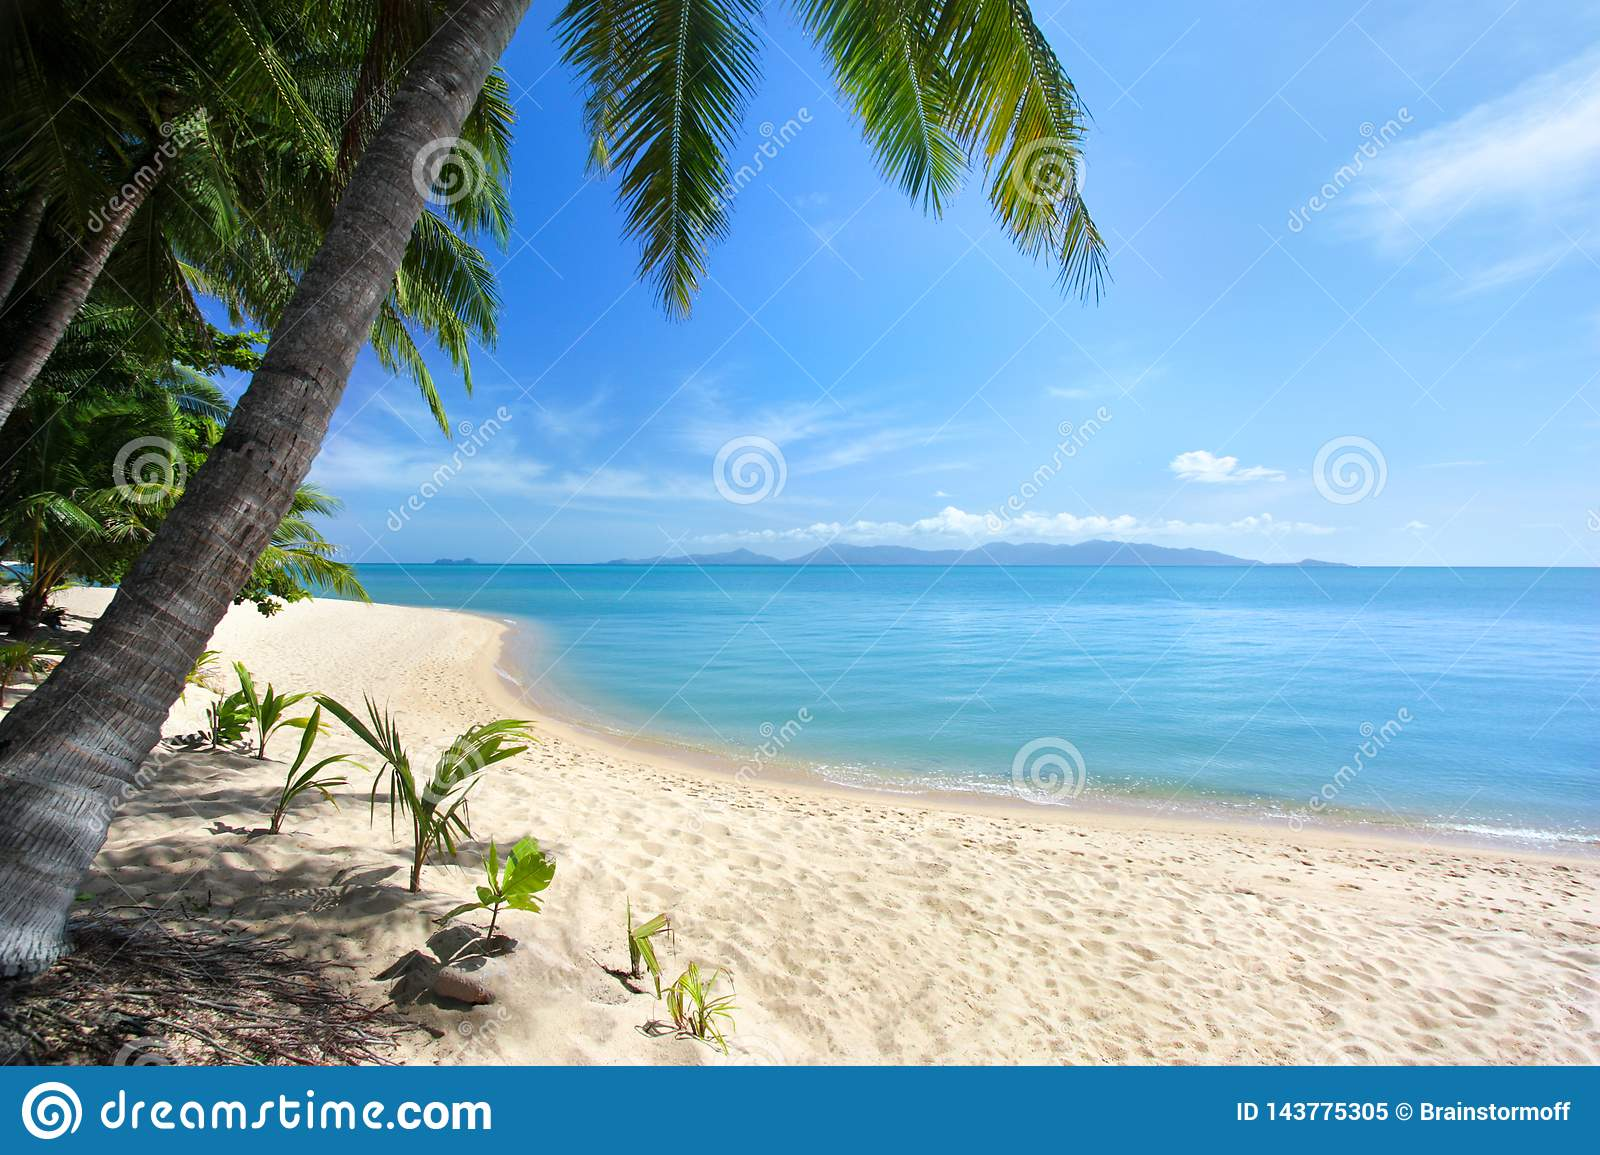 Lonely white sand beach, green palm trees, blue sea, bright sunny sky, white clouds background